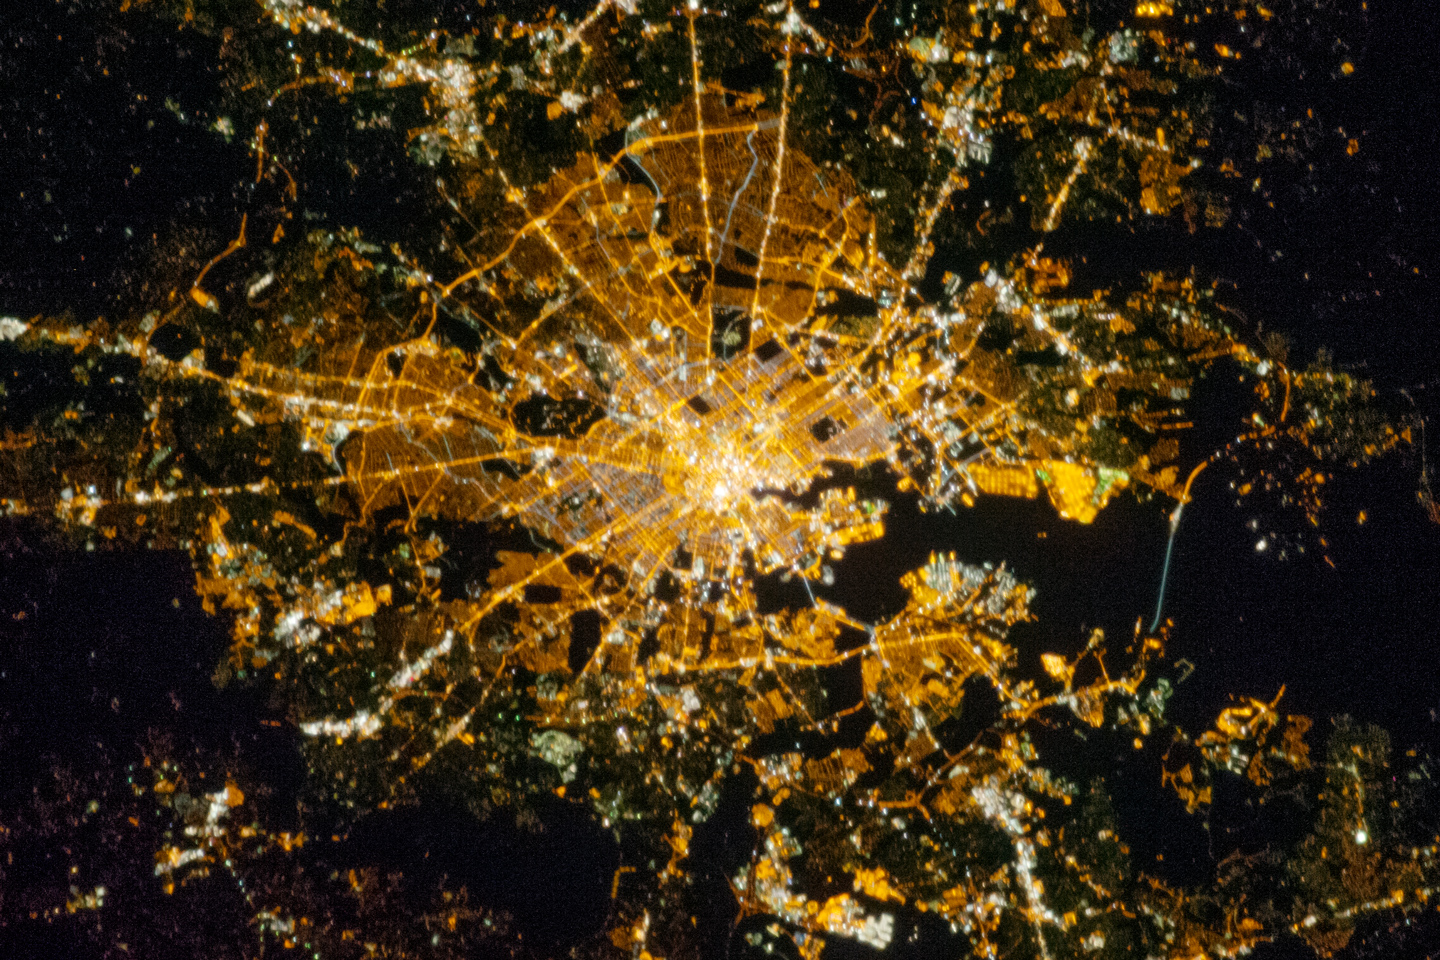 Today's Image of the Day comes from the NASA Earth Observatory and features a look at night lights in the city of Baltimore.